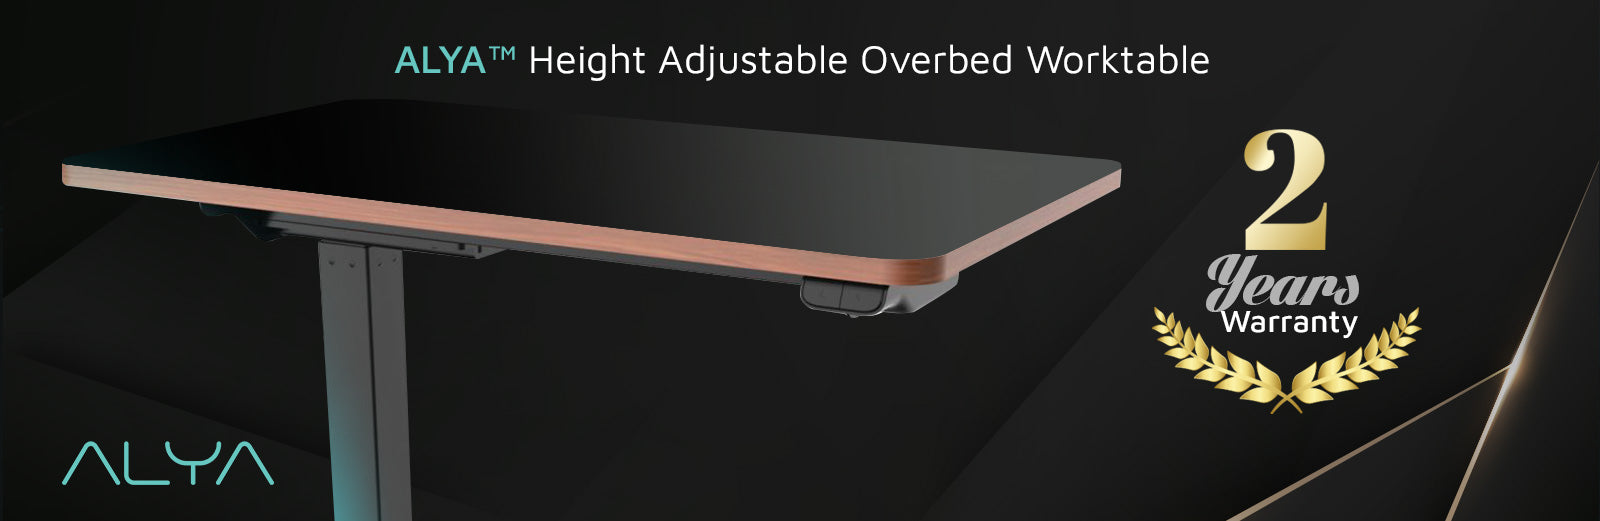 ALYA™ Height Adjustable Overbed Worktable comes with 2 Years Warranty